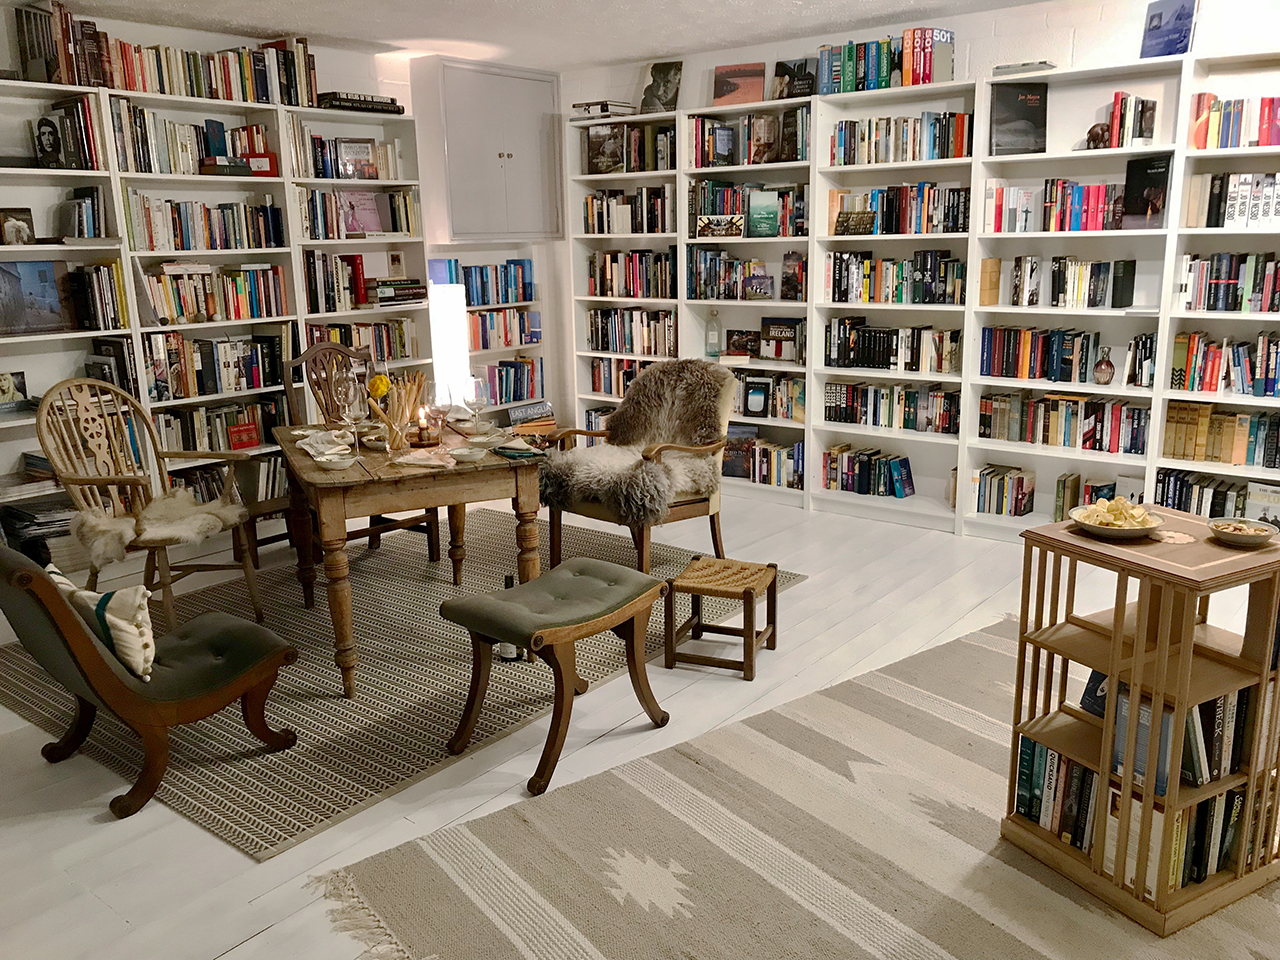 Mutter Verführt Sohn Im Wohnzimmer Much More Than A Room Full Of Books The World According To Dina